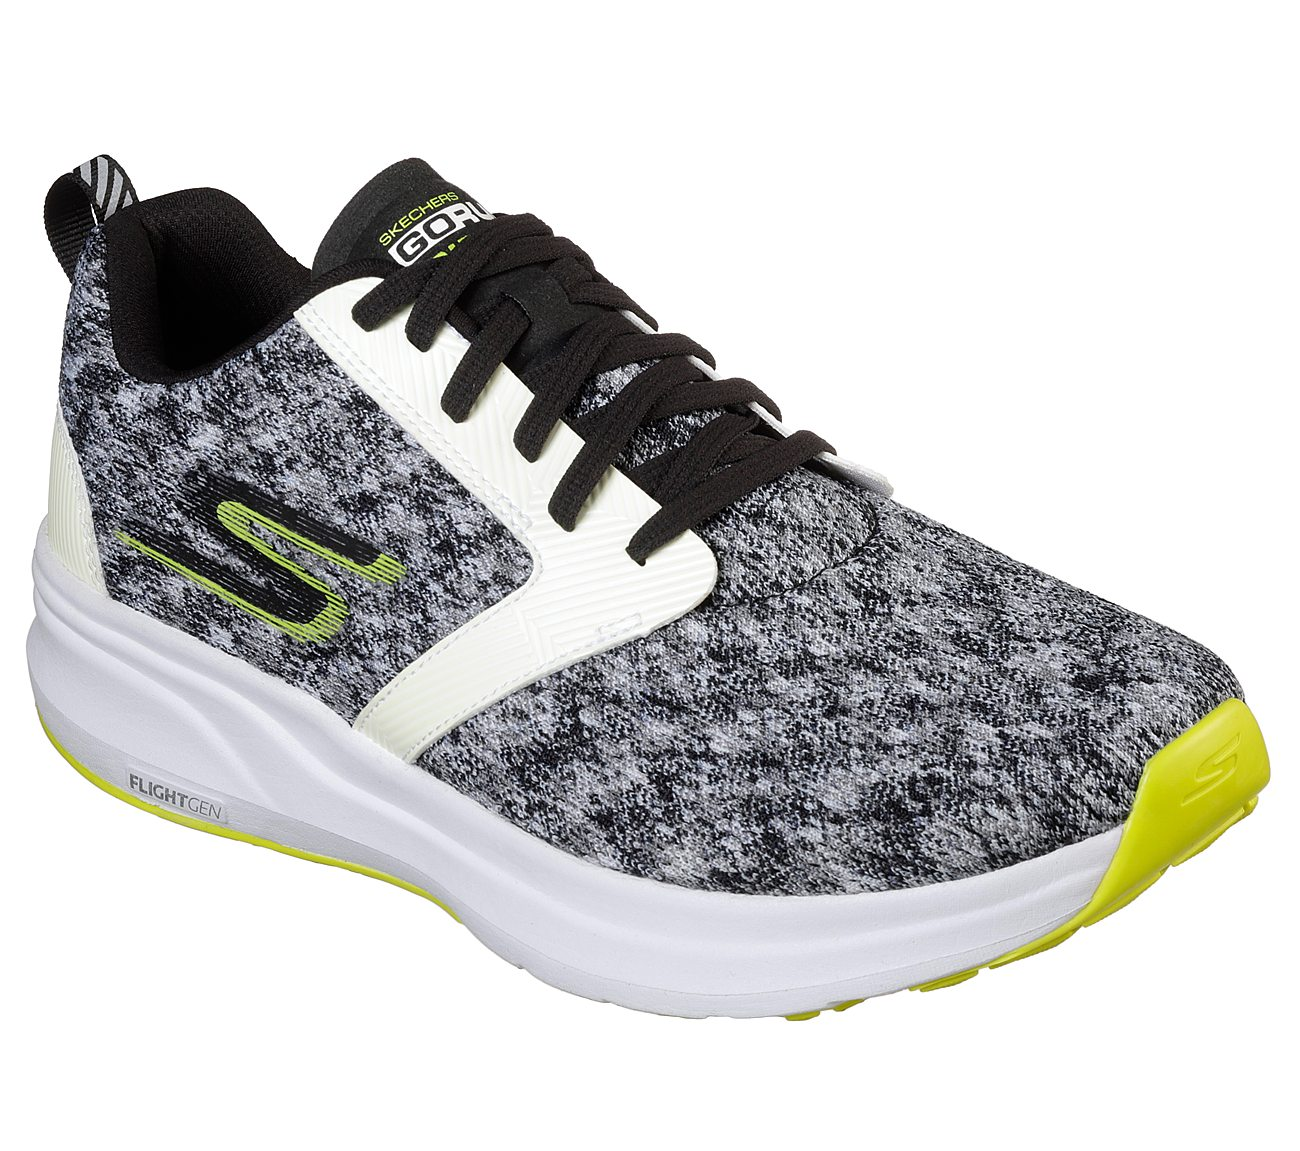 Buy SKECHERS Skechers GOrun Ride 7 - Nite Owl Skechers Performance ... 397e627ca42f